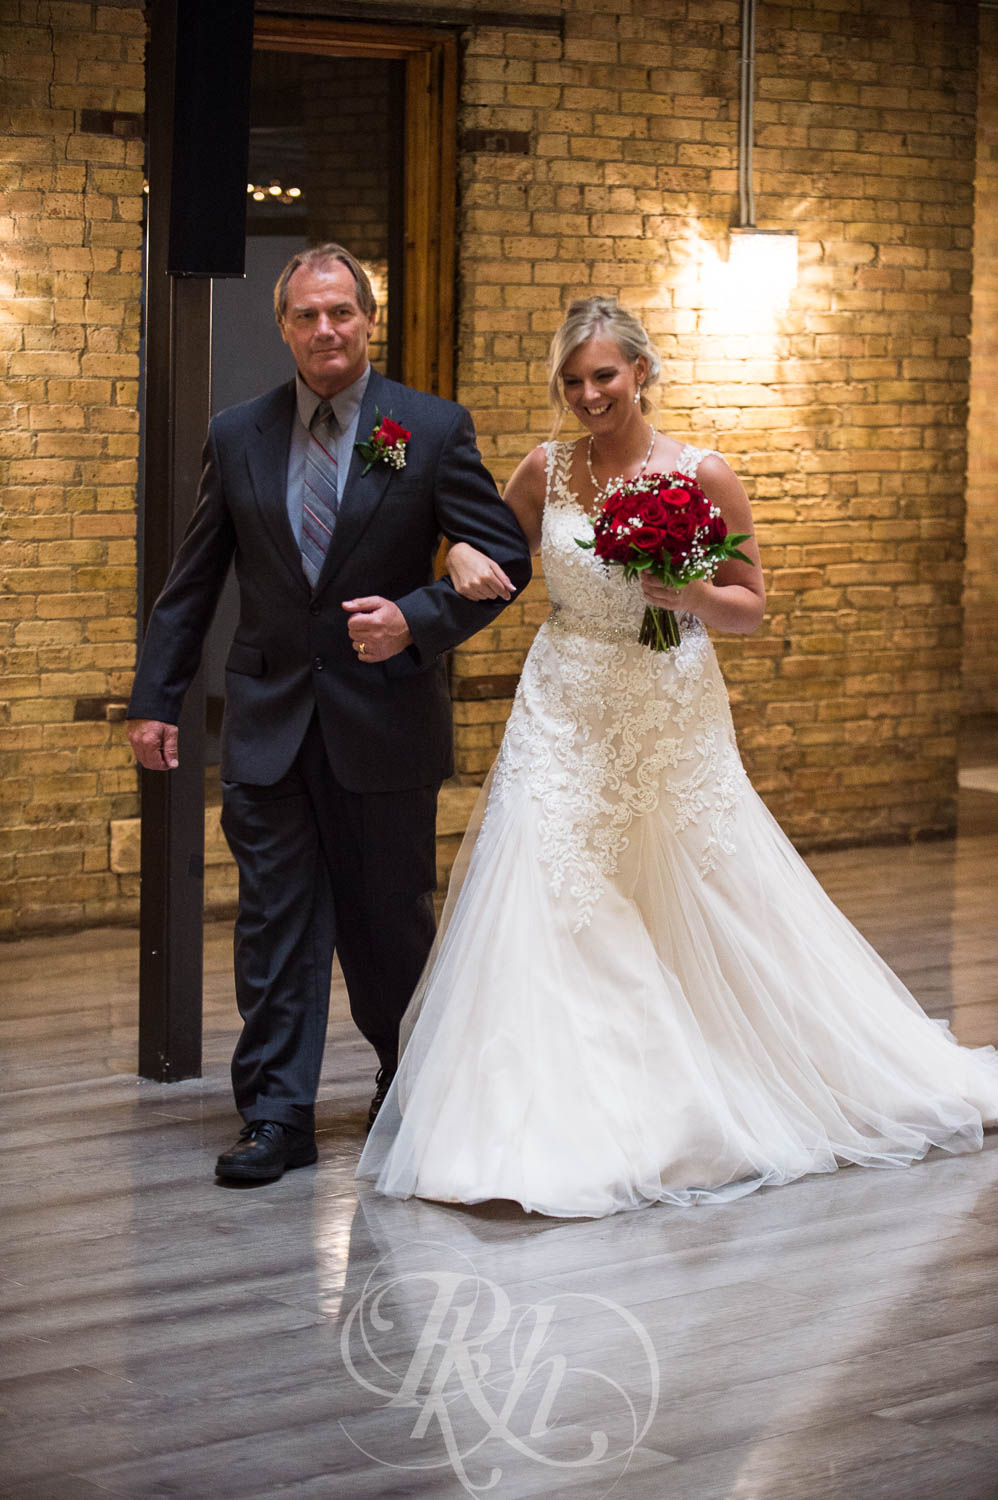 Katie & Jeff - Minnesota Wedding Photography - Lumber Exchange Building - RKH Images - Blog  (33 of 49).jpg